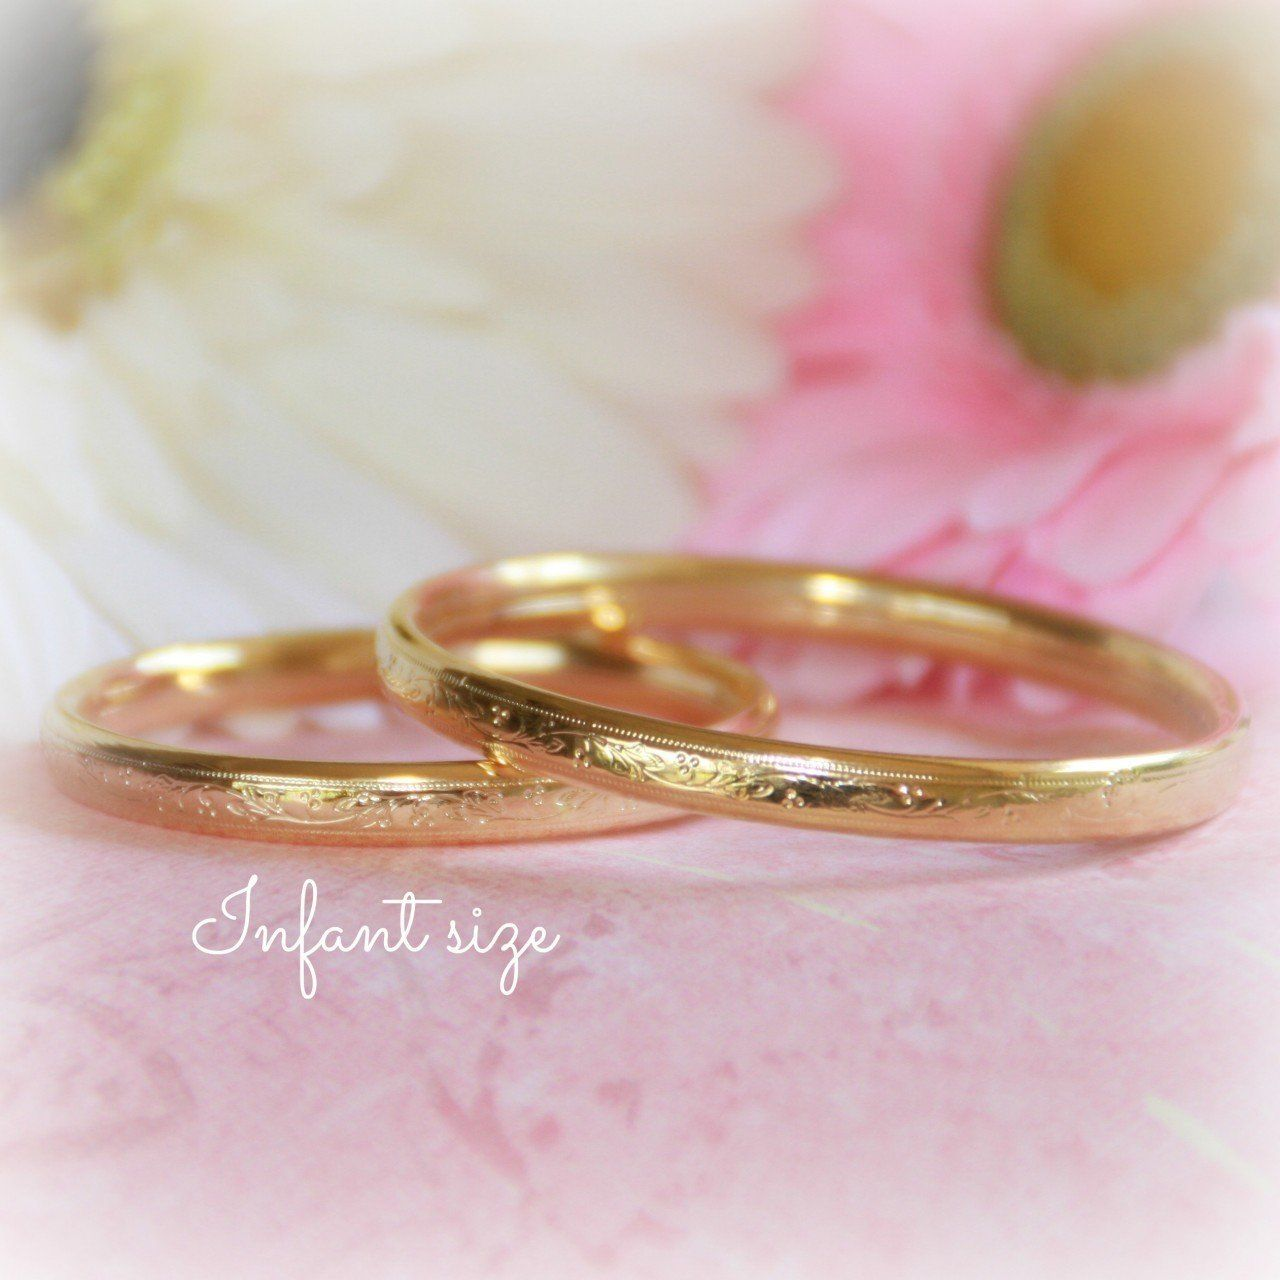 filled on aliexpress dia gold item baby in bracelet bangle bangles com alibaba from yellow infant jewelry accessories group